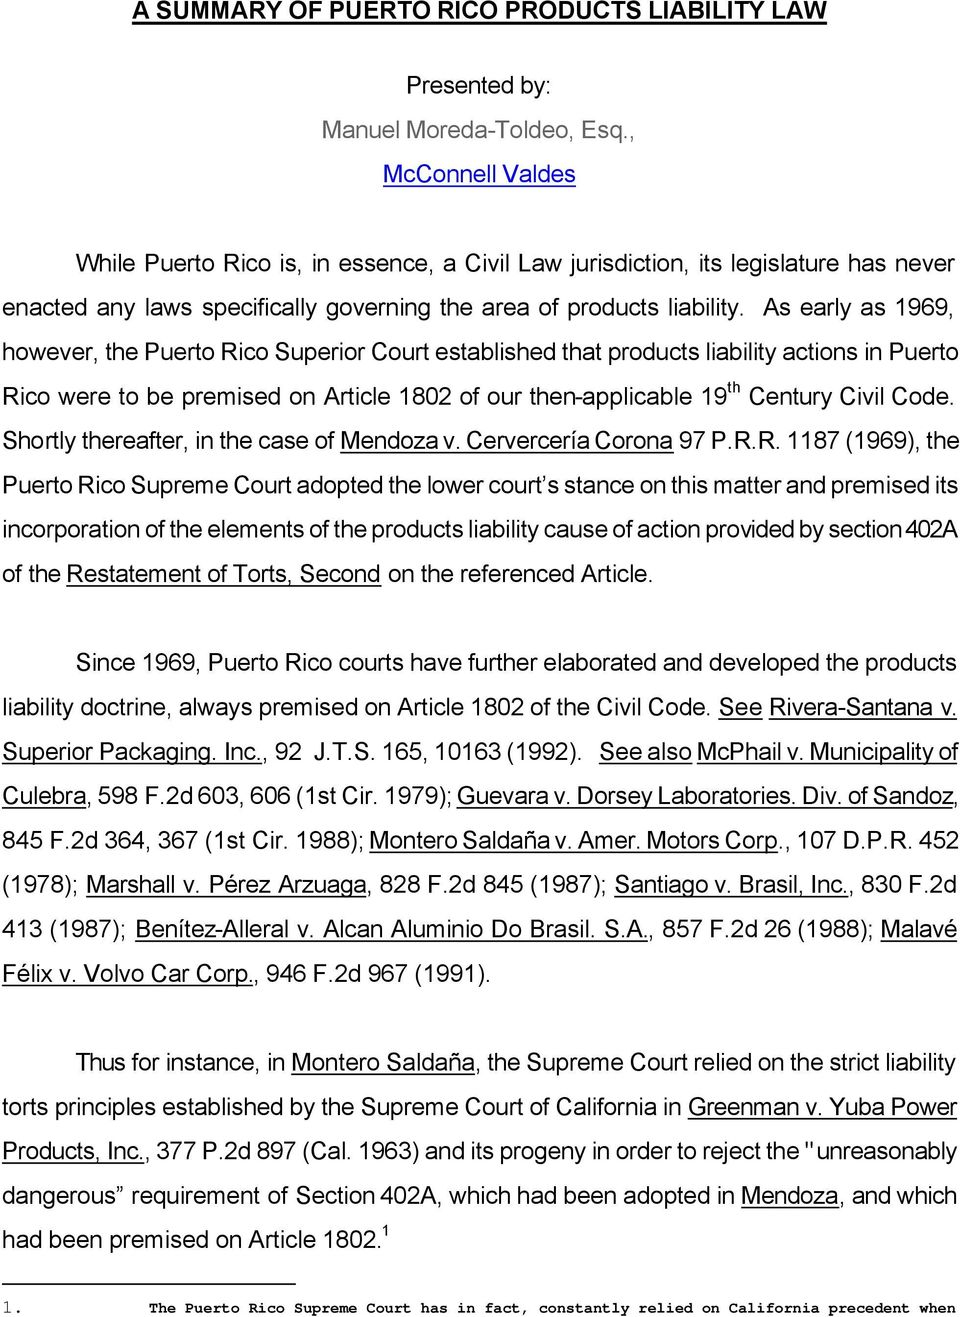 As early as 1969, however, the Puerto Rico Superior Court established that products liability actions in Puerto Rico were to be premised on Article 1802 of our then-applicable 19 th Century Civil